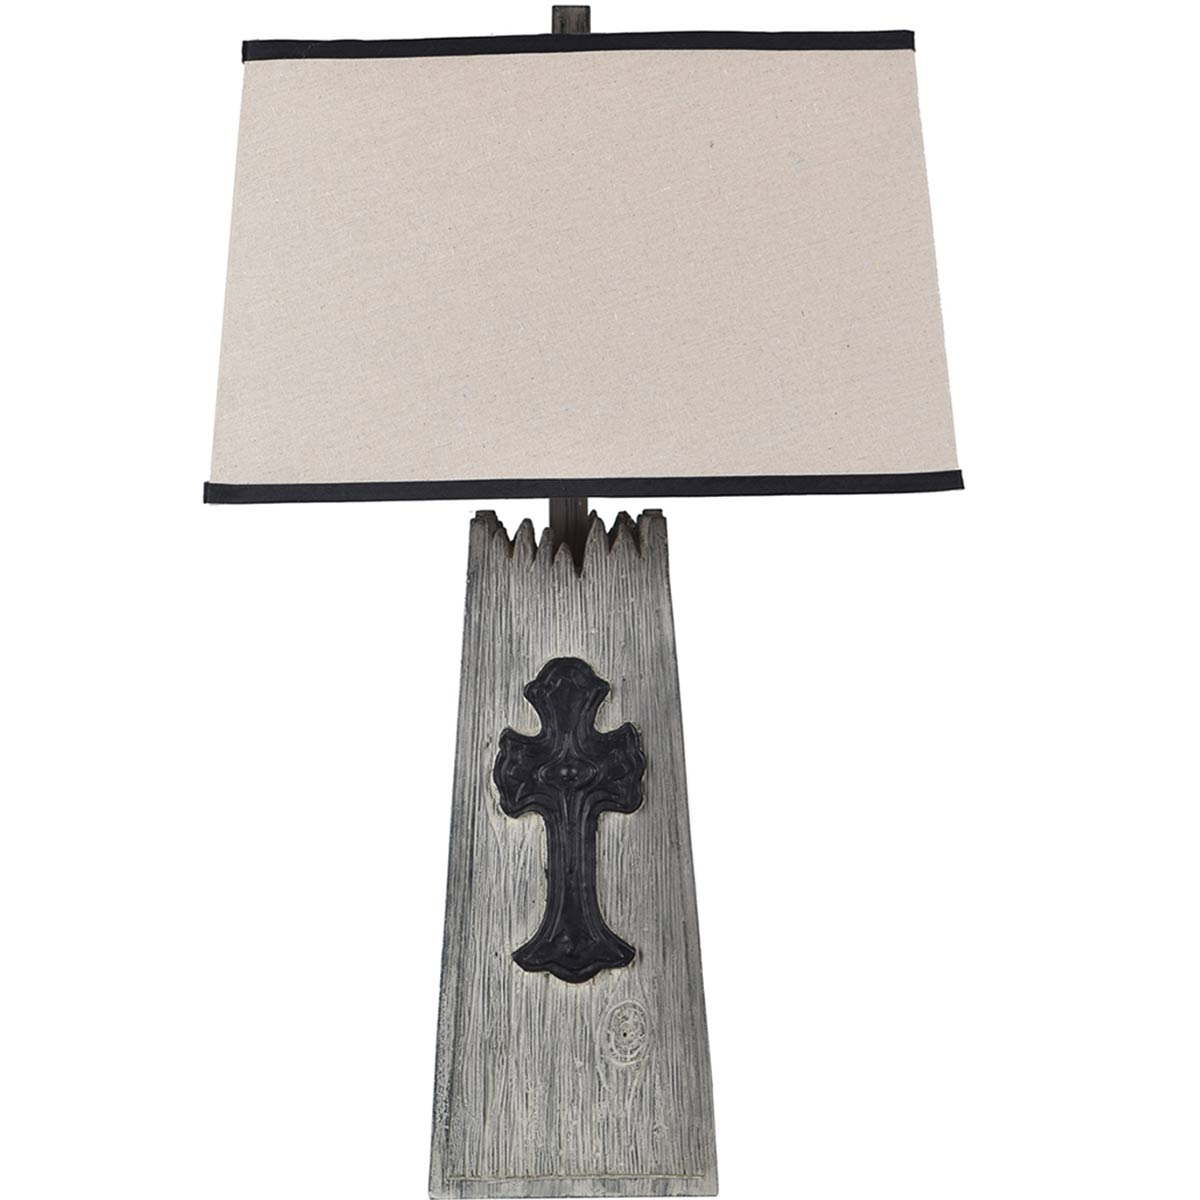 Mission Cross Table Lamp - Gray